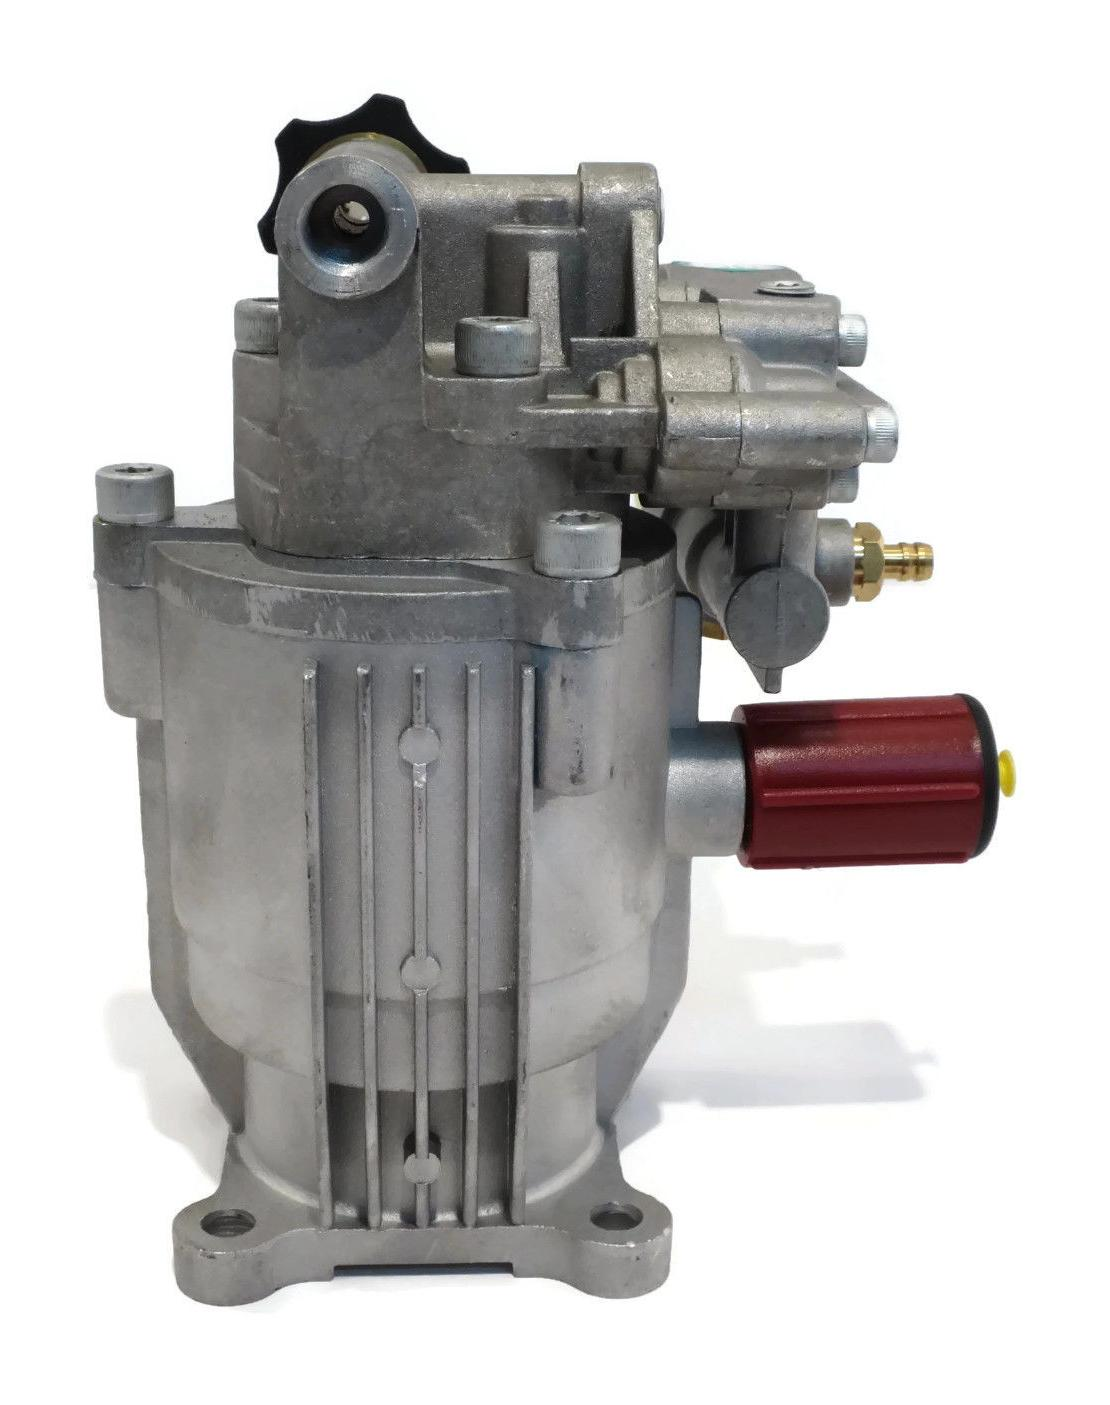 PRESSURE fits with Valve